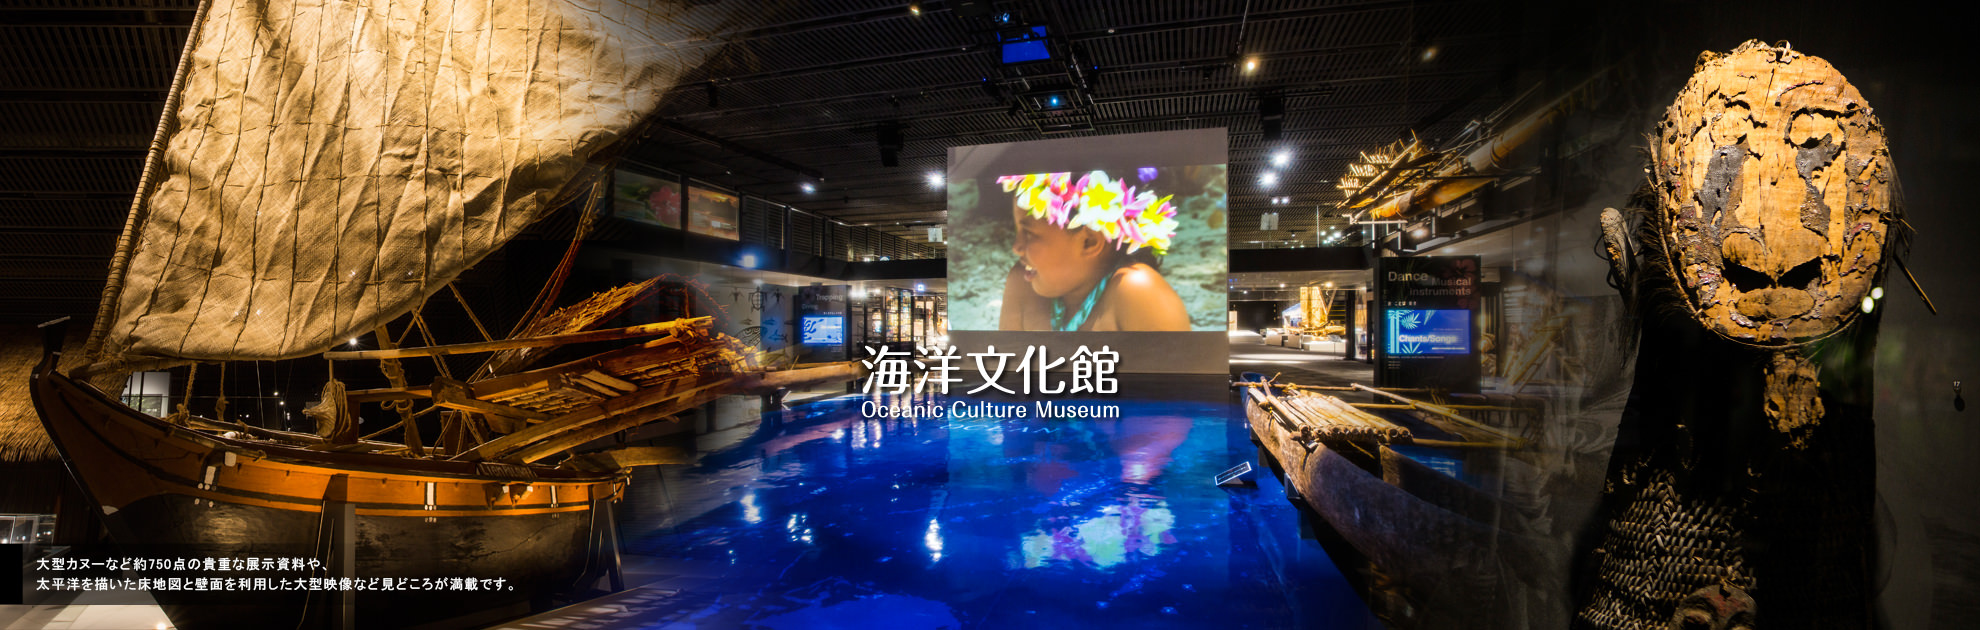 Oceanic Culture Museum is full of must-see items including approximately 750 precious displays of large canoes and so forth,  floor-drawn map of the Pacific Ocean as well as large screen images on the wall.